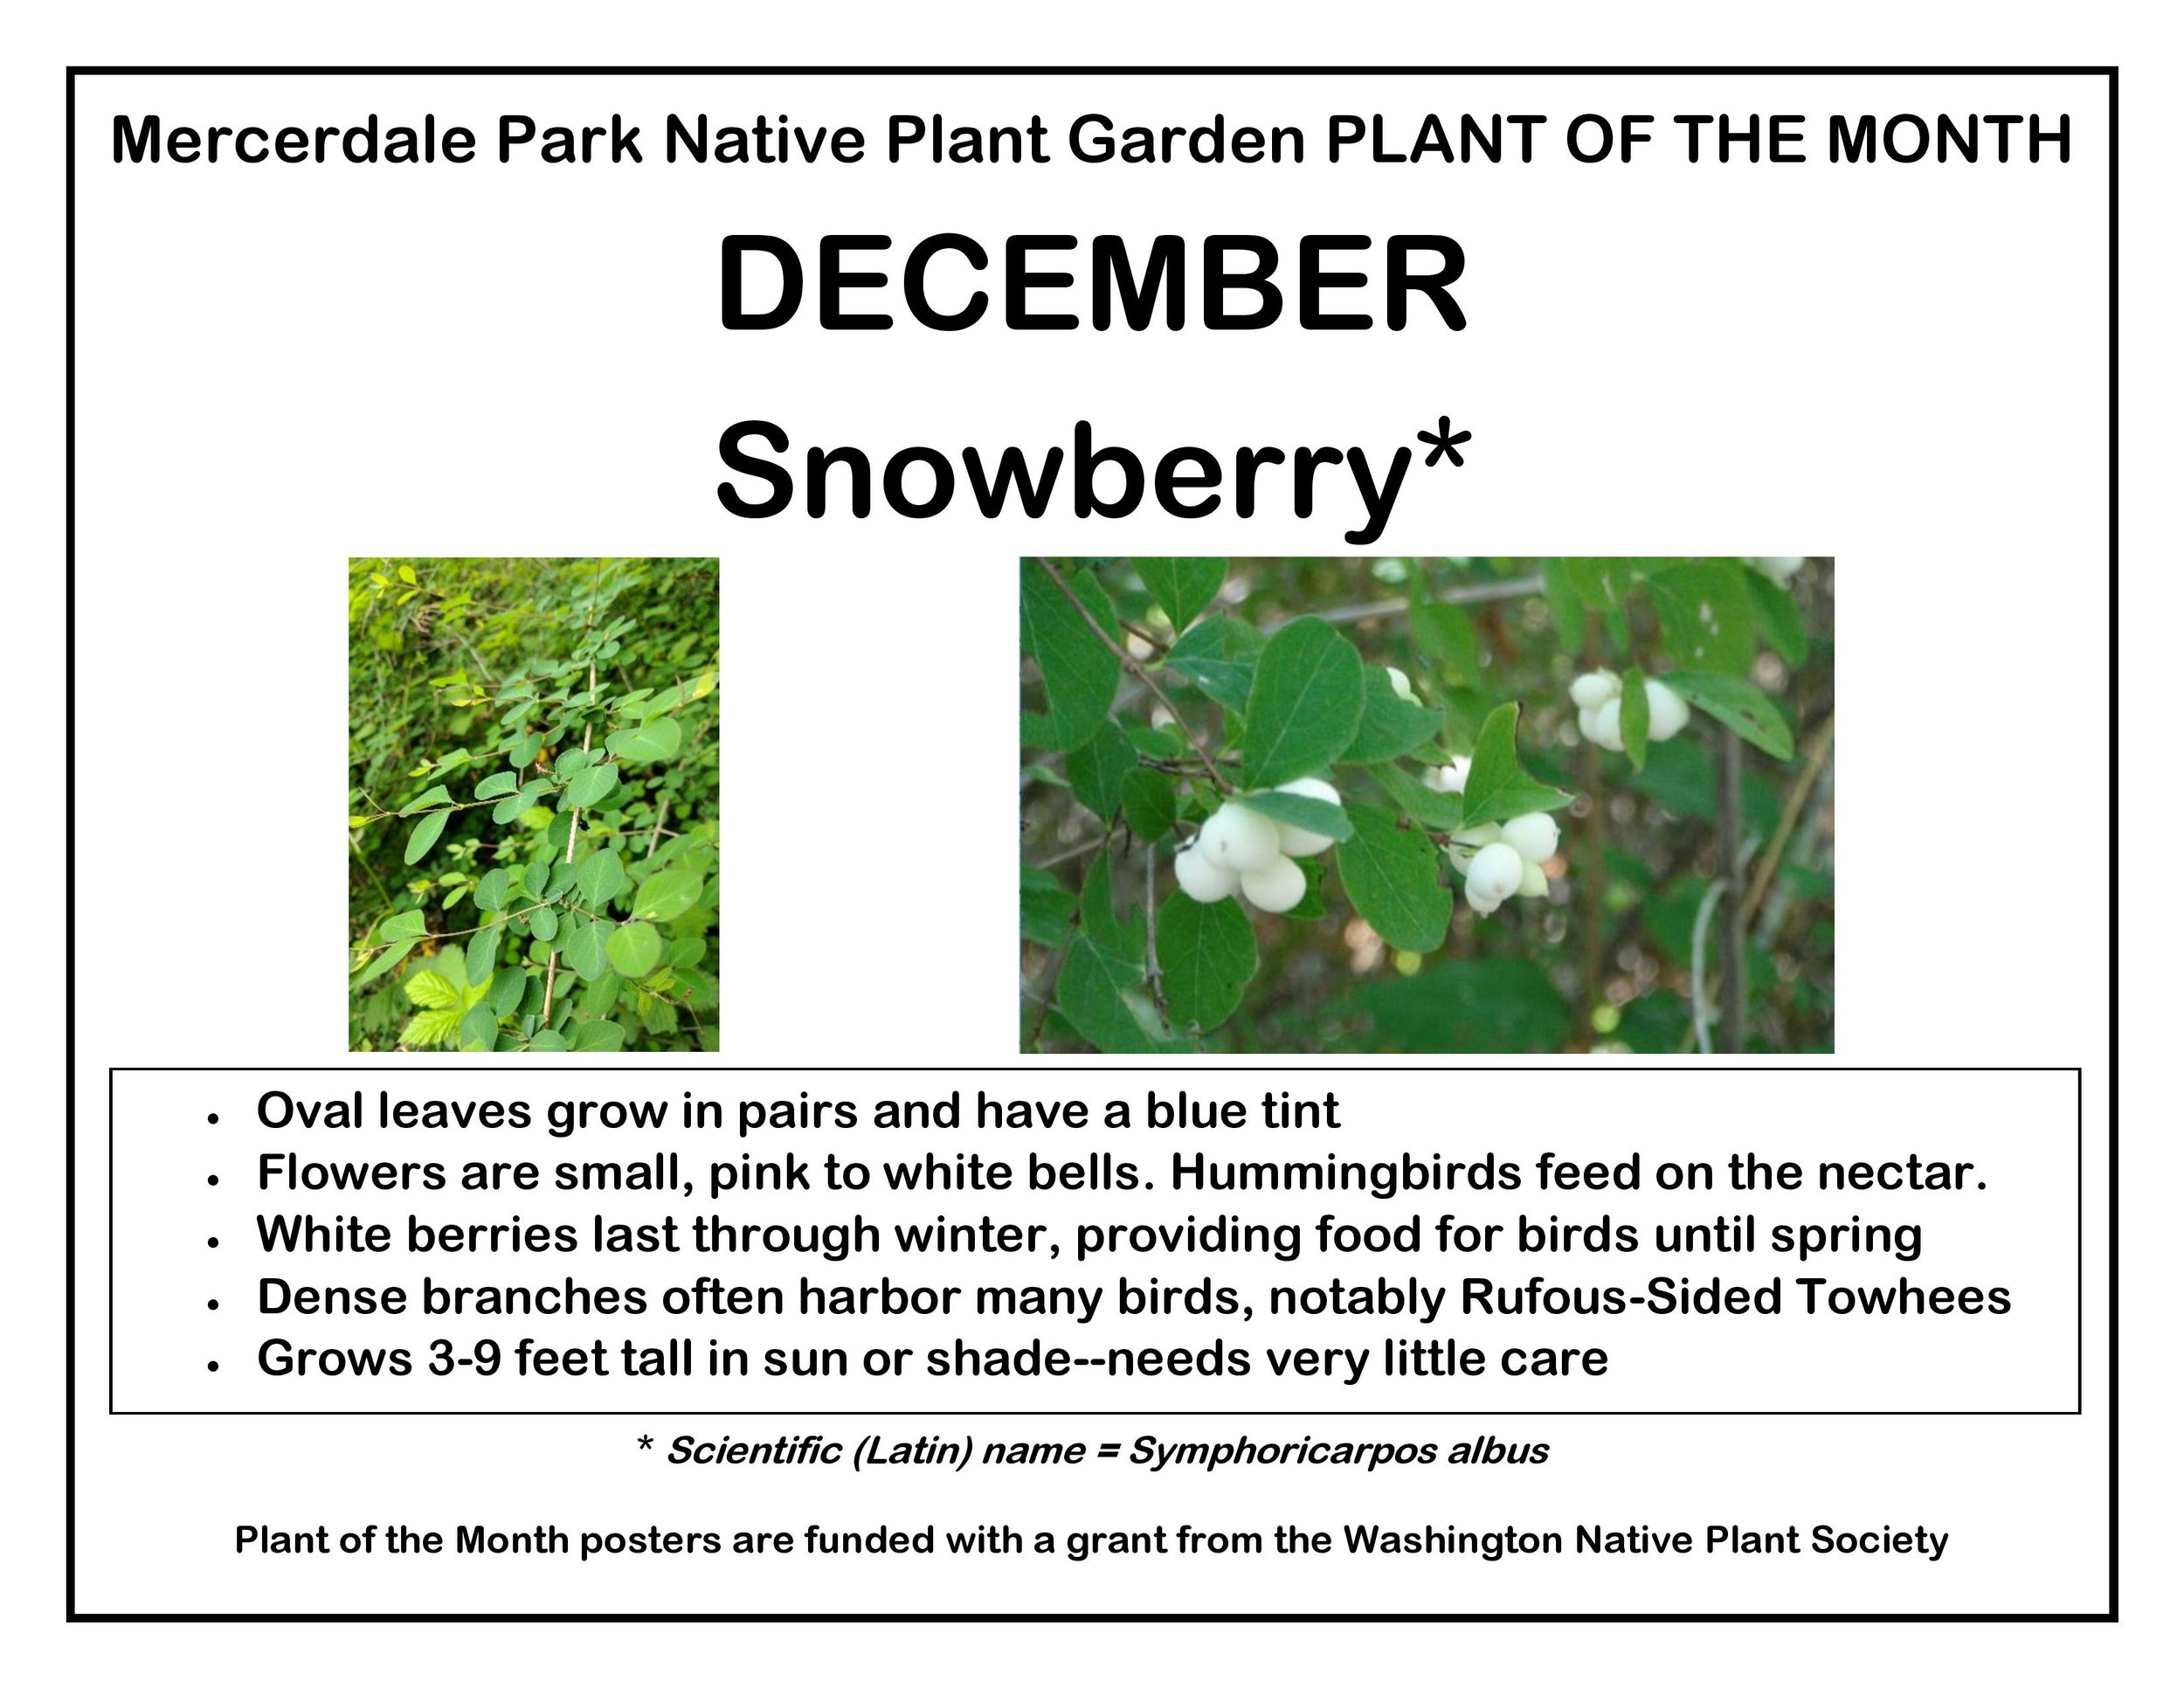 p PLANT OF THE MONTH 12 December Snowberry v2-page-001.jpg